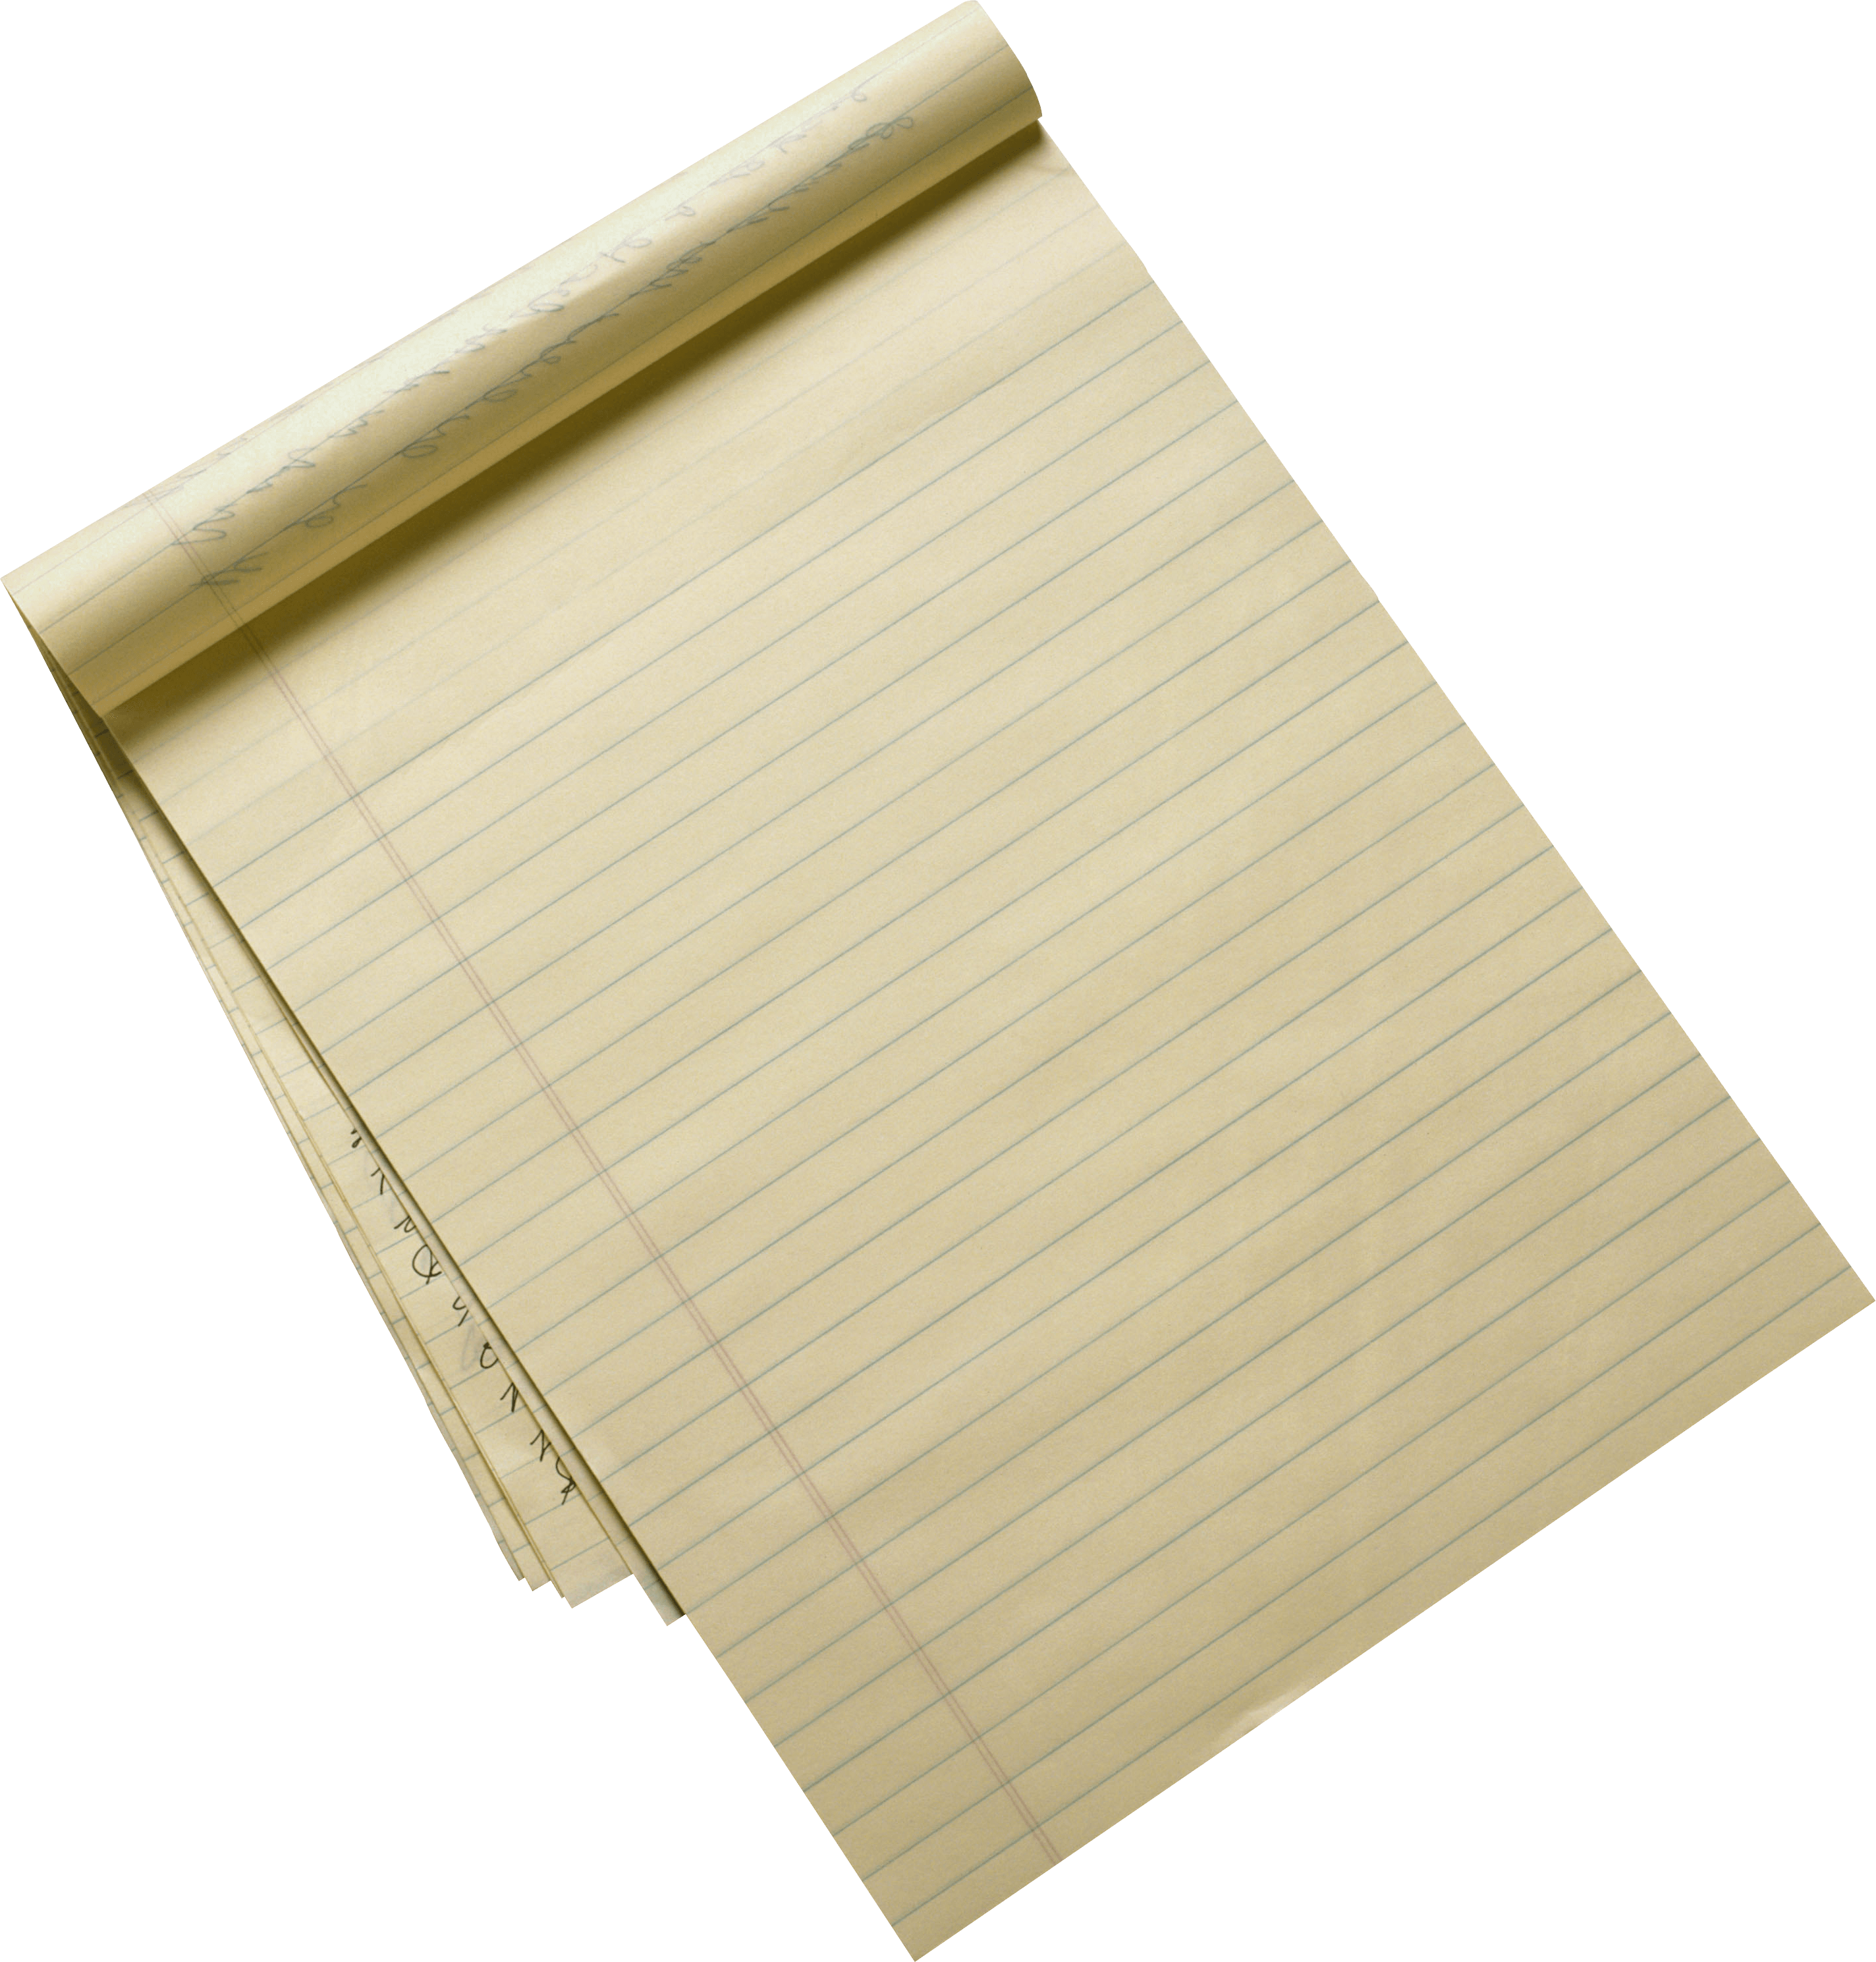 Hole in paper png. Sheet april onthemarch co